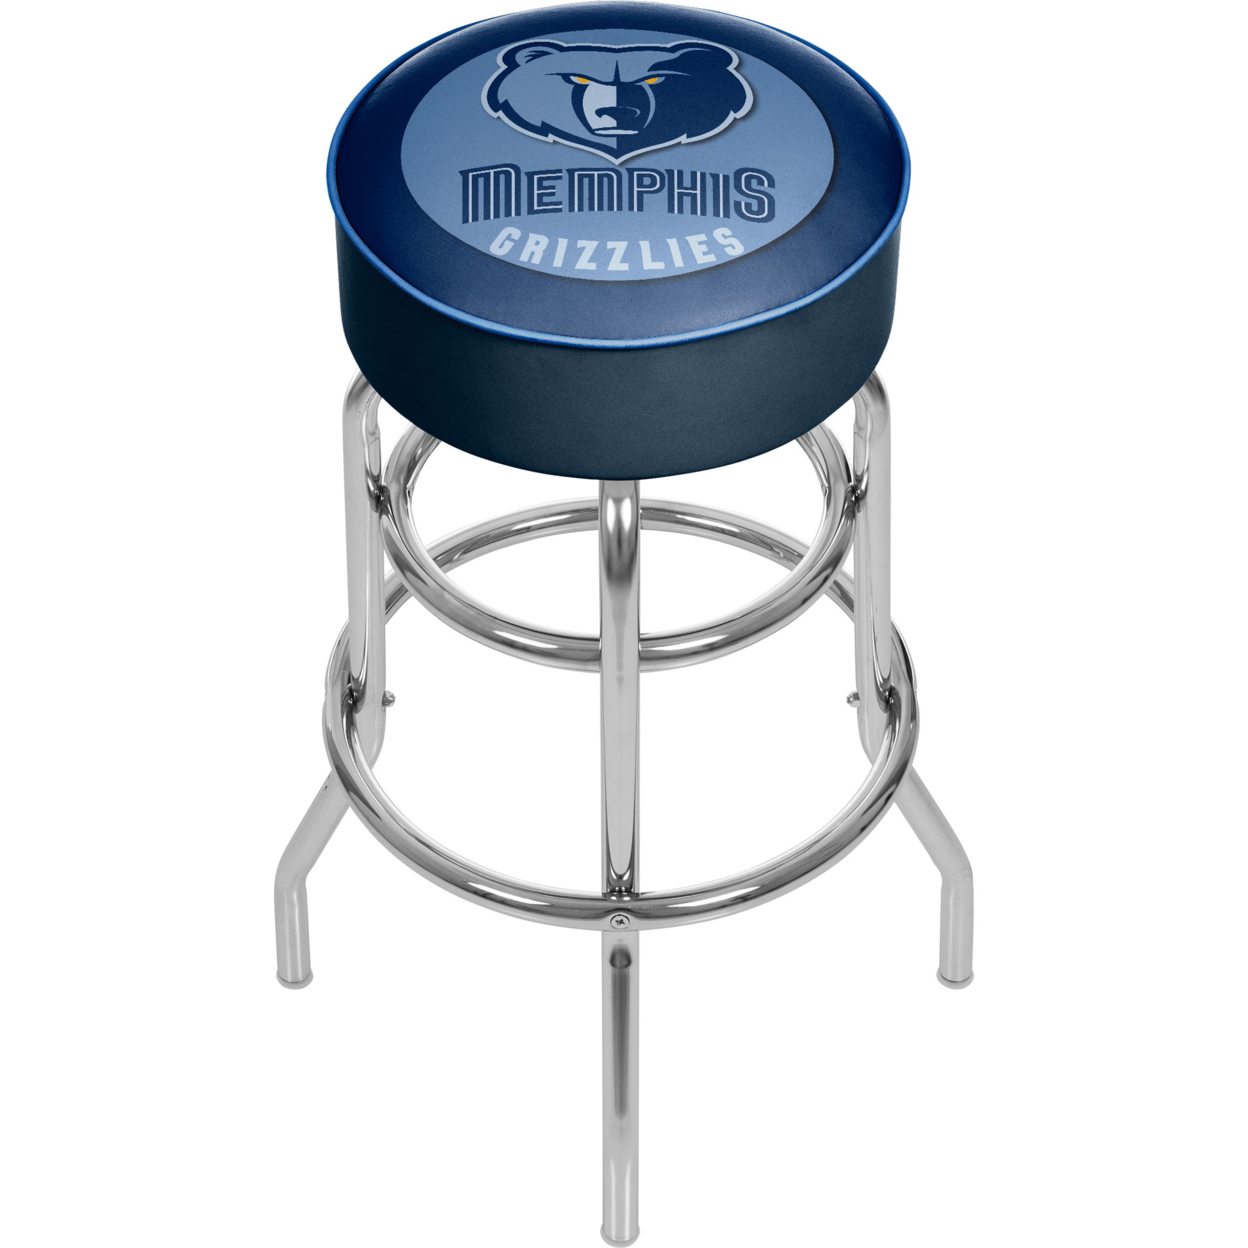 Memphis Grizzlies NBA Padded Swivel Bar Stool 30 Inches High фанатская атрибутика nike curry nba